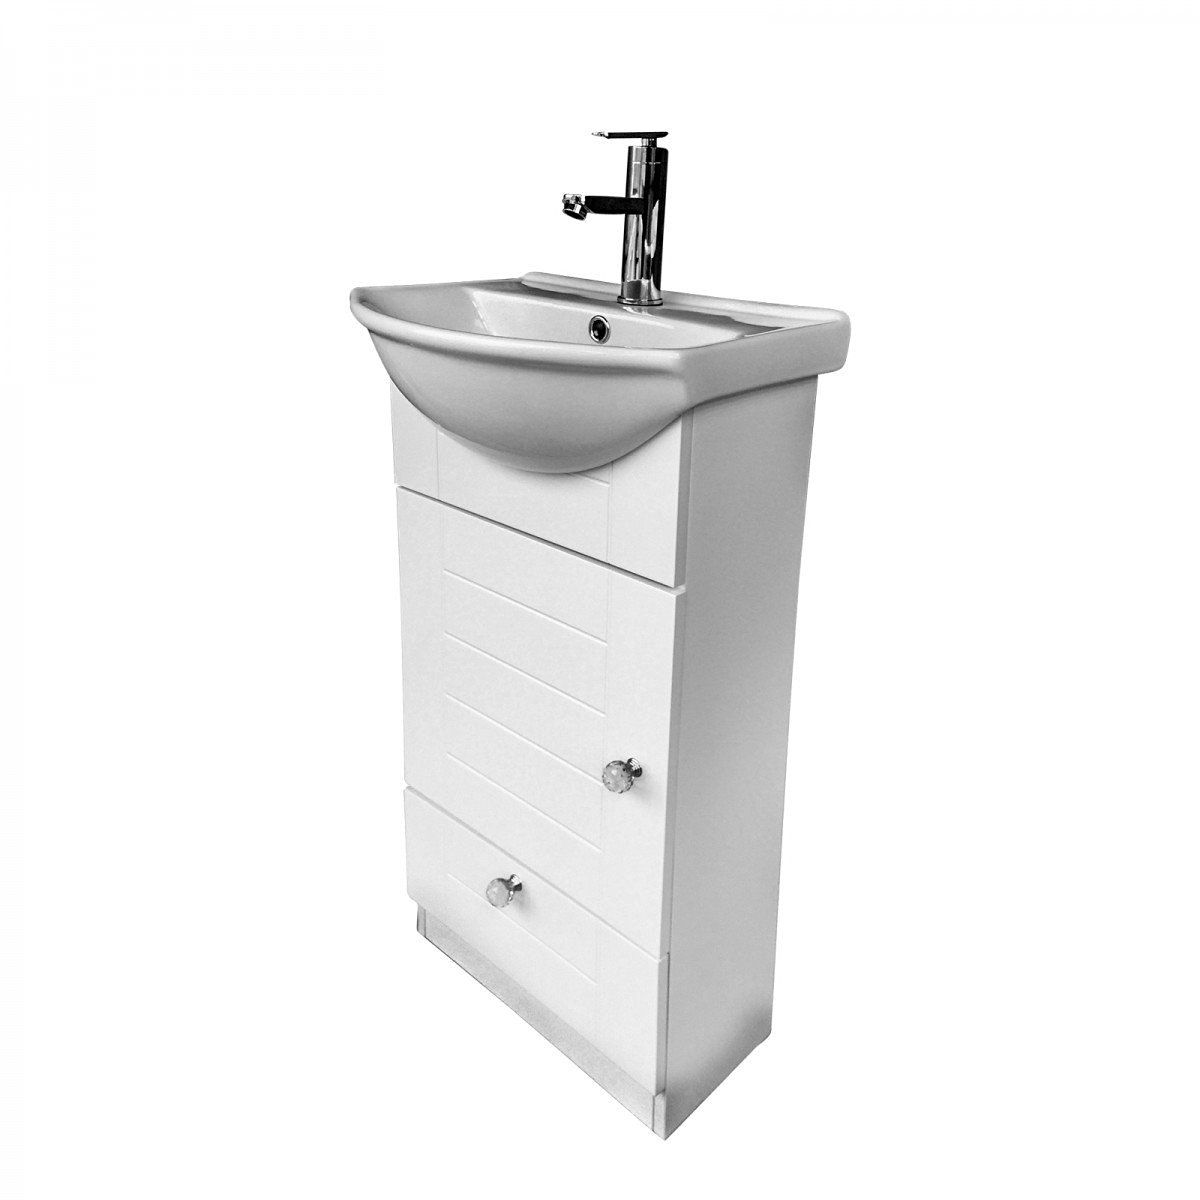 Bathroom Vanity With Sink Faucet Cabinets Easy Assemble Install ...